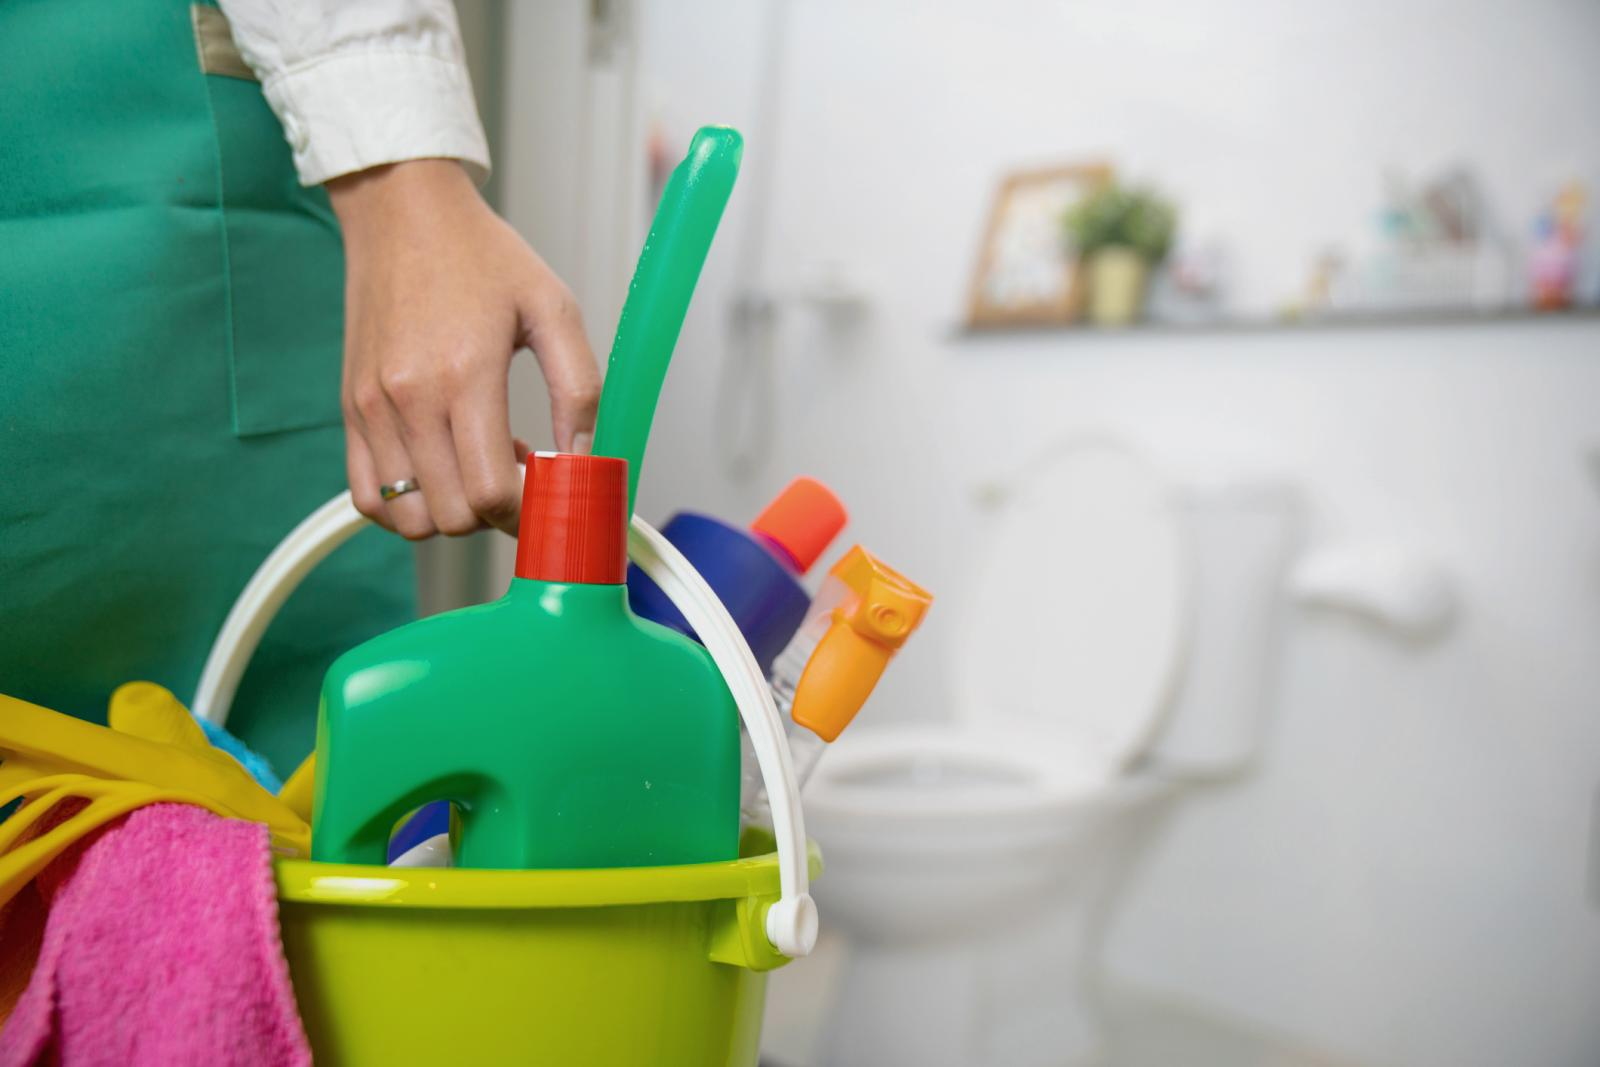 Woman is standing in the bathroom holding a bucket full of cleaning supplies